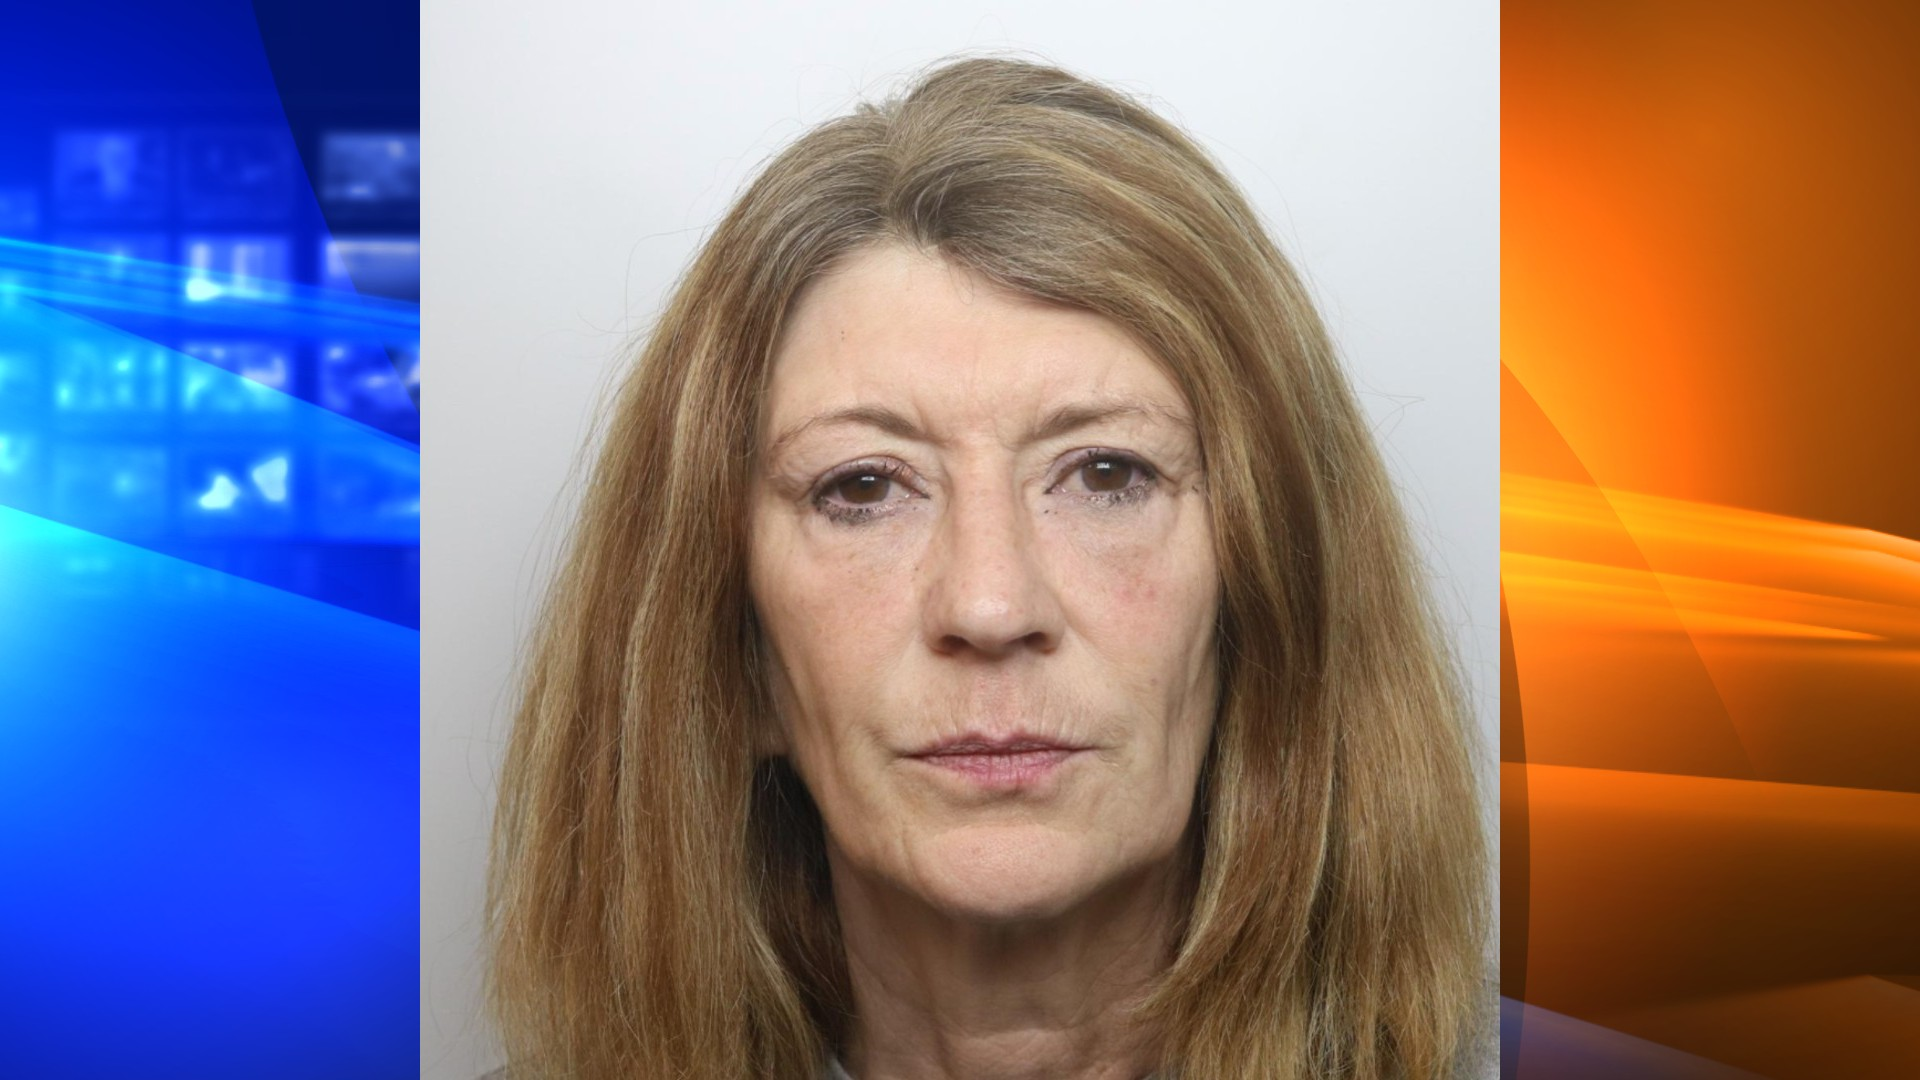 Corinna Smith is seen in a booking photo released by the Cheshire Constabulary.